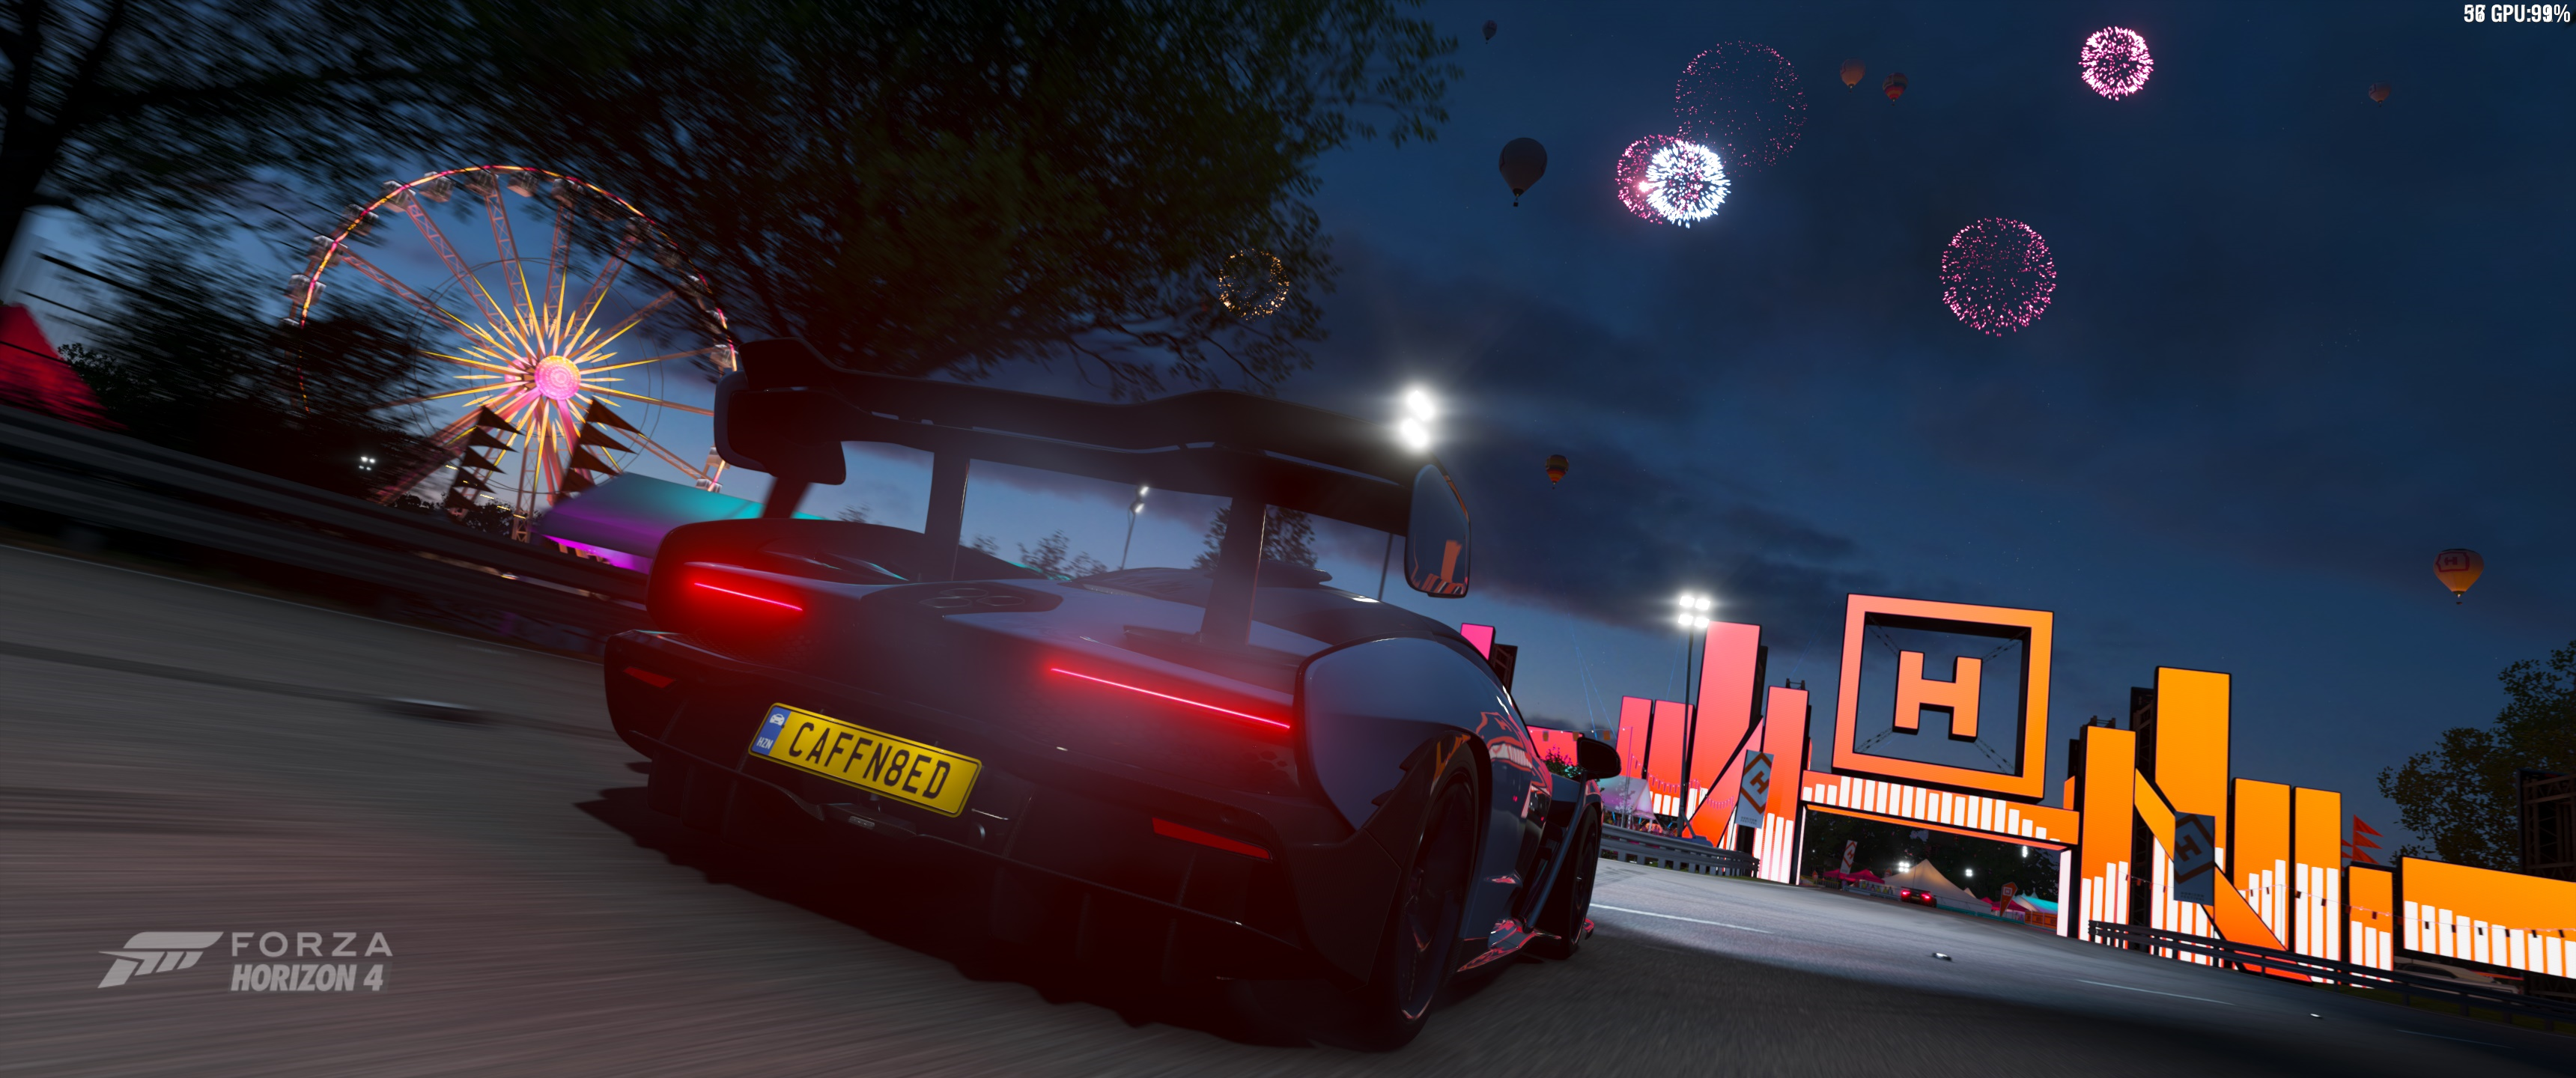 Forza Horizon 4: I Spent Over Four Hours Driving in the Demo